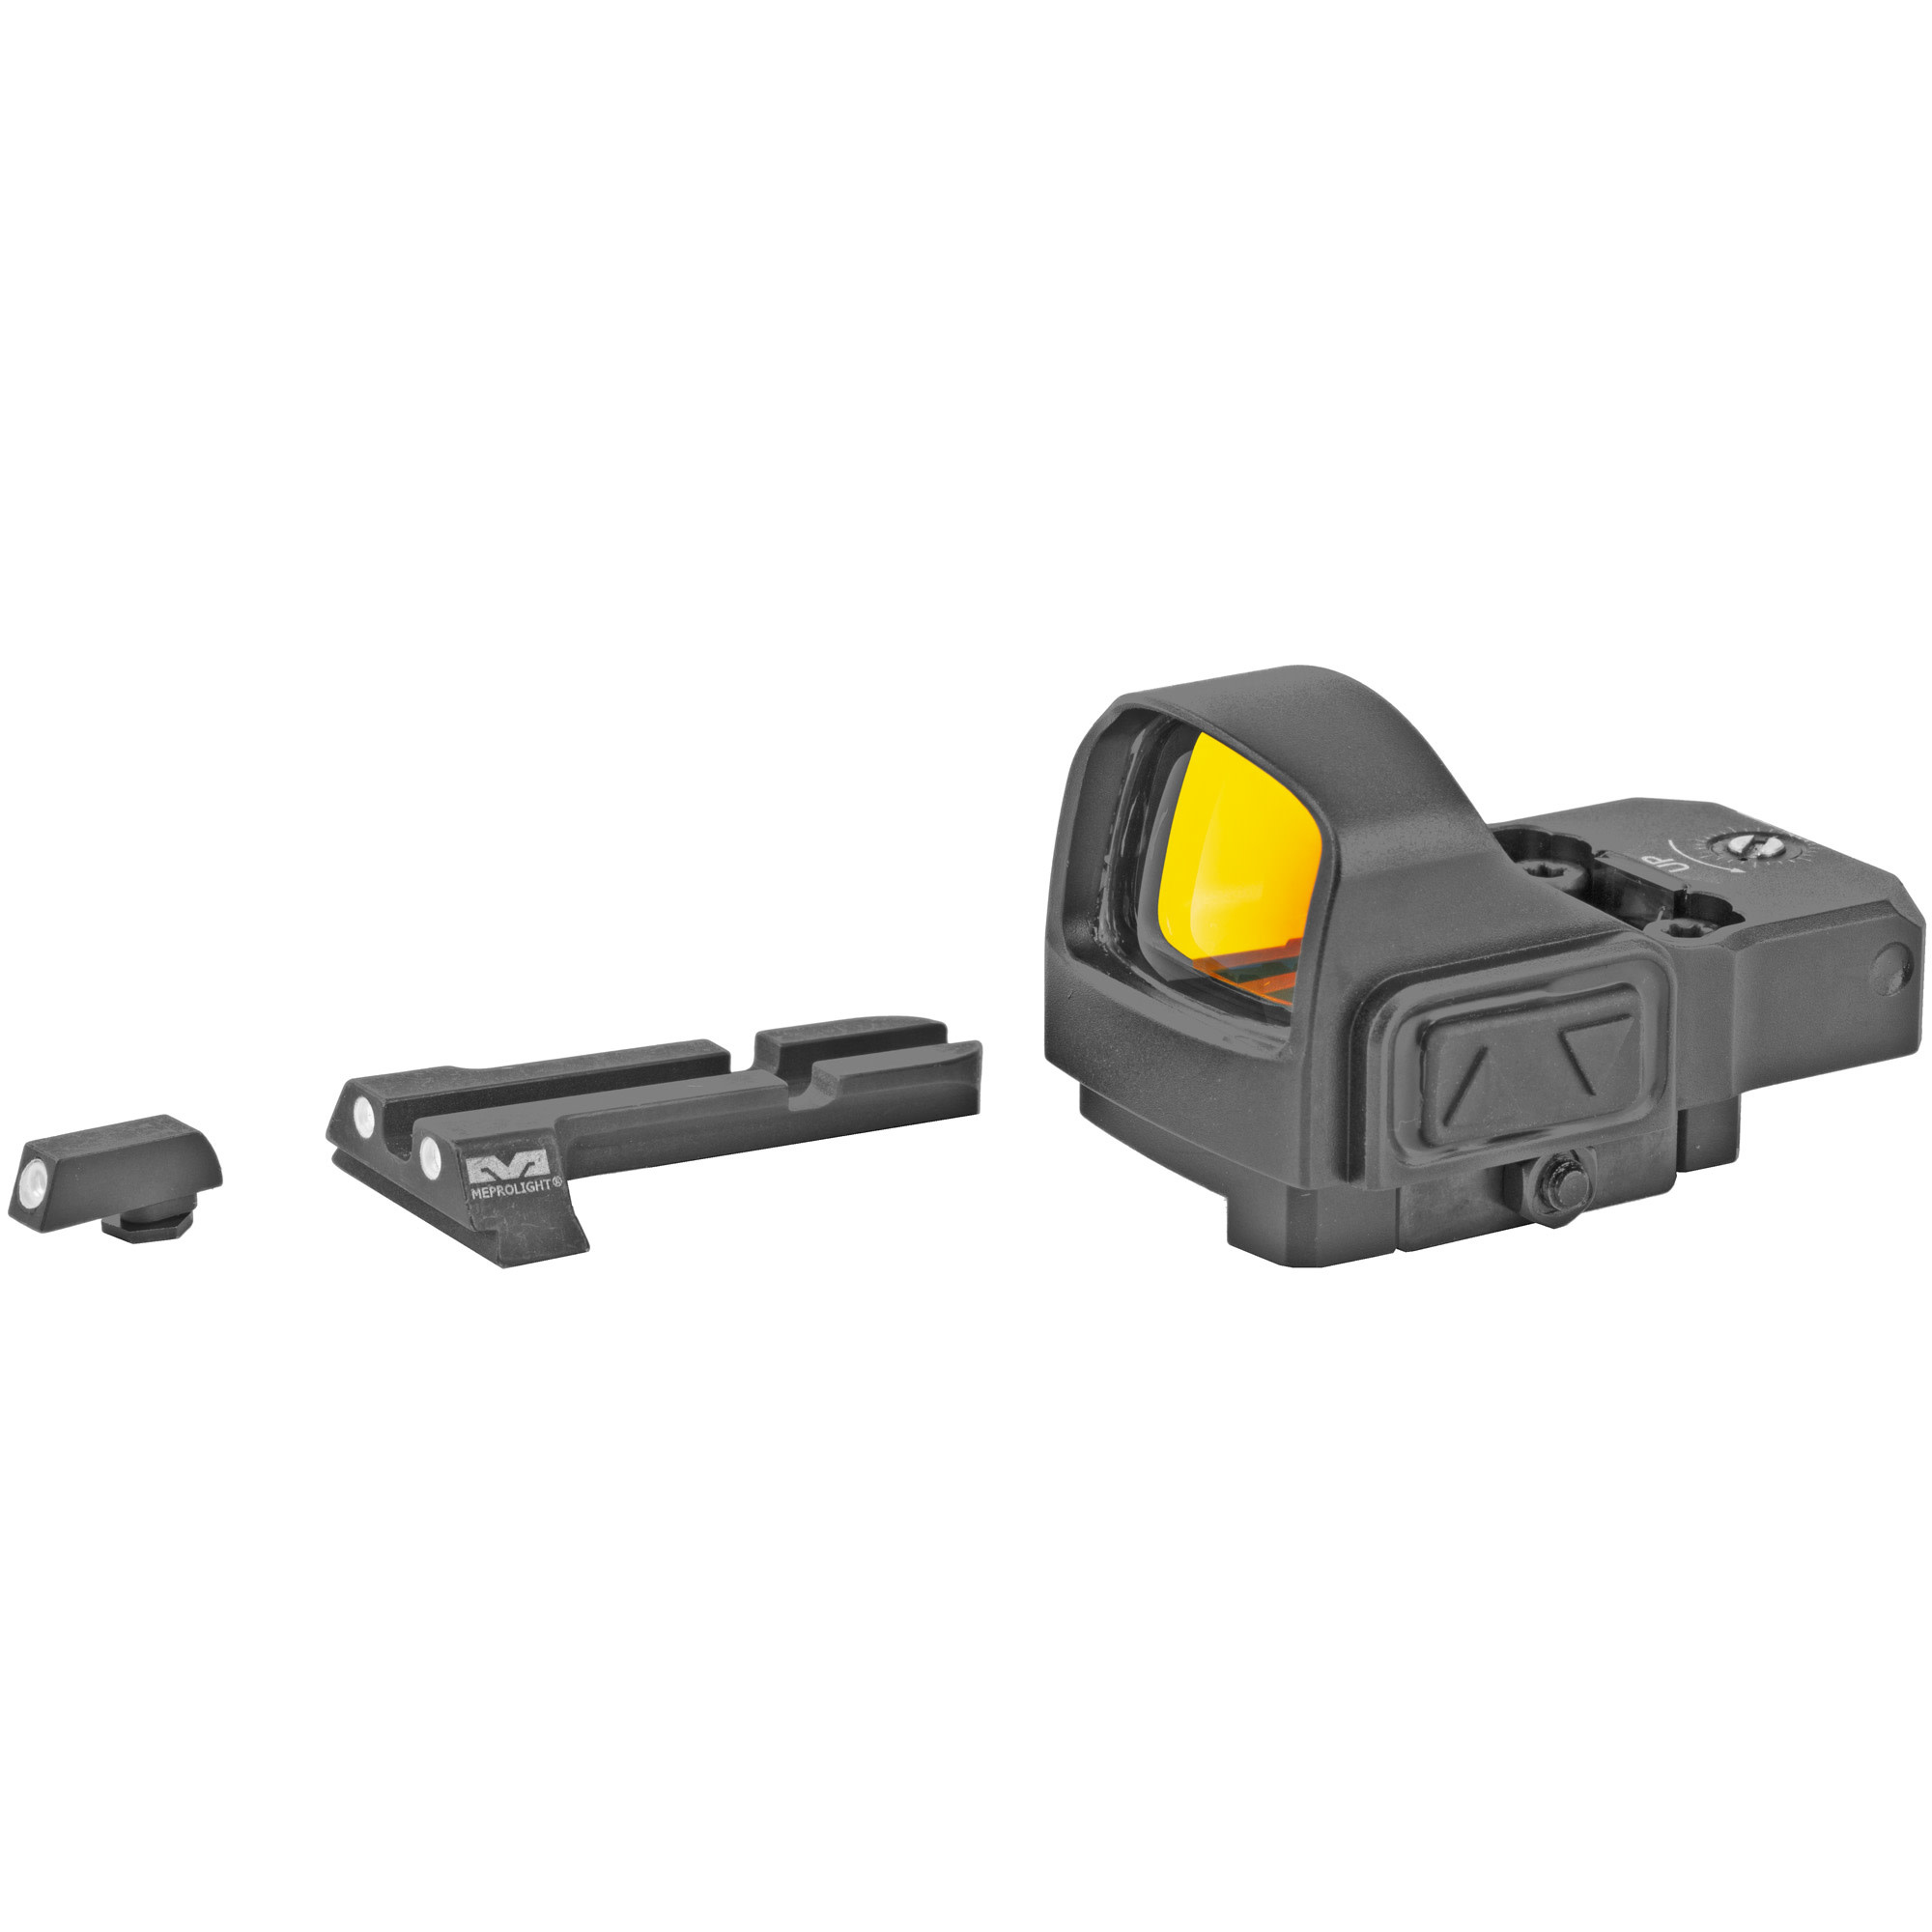 MEPROLIGHT MICRO RDS KIT, GLOCK, includes sights and red dot